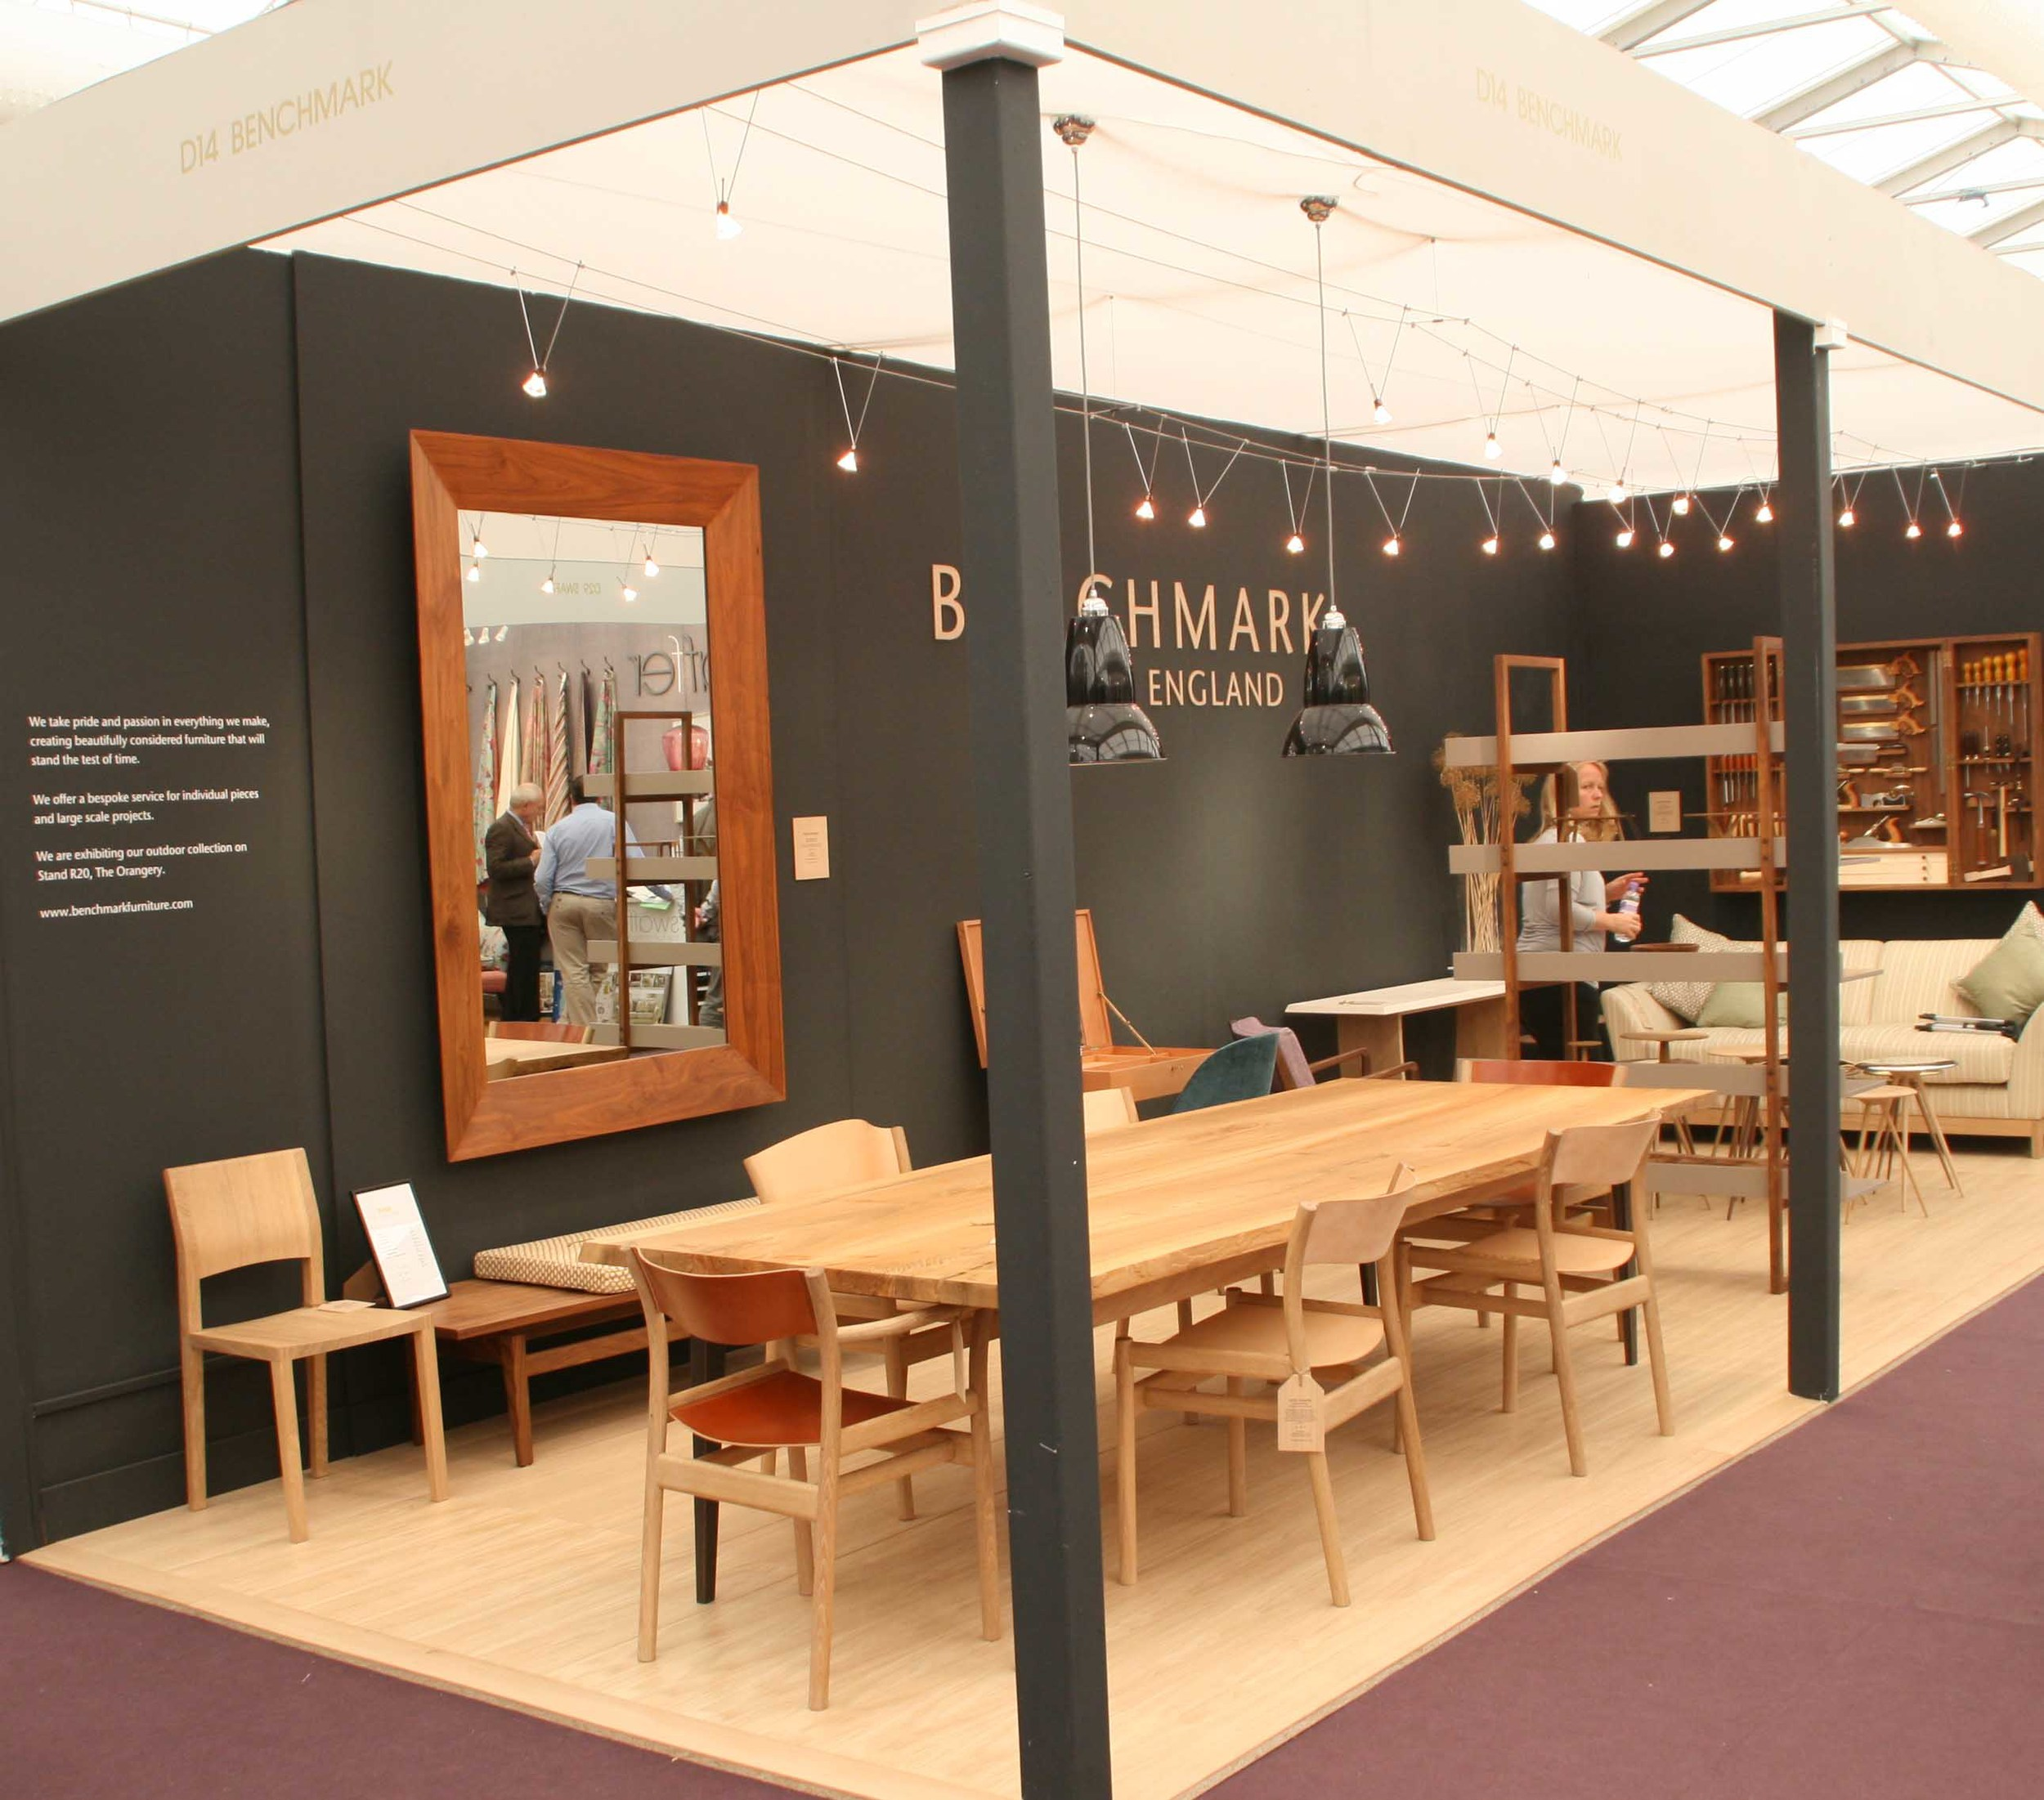 Hand crafted Oxbow dining chair launched at exhibition designed by furniture maker Namon Gaston